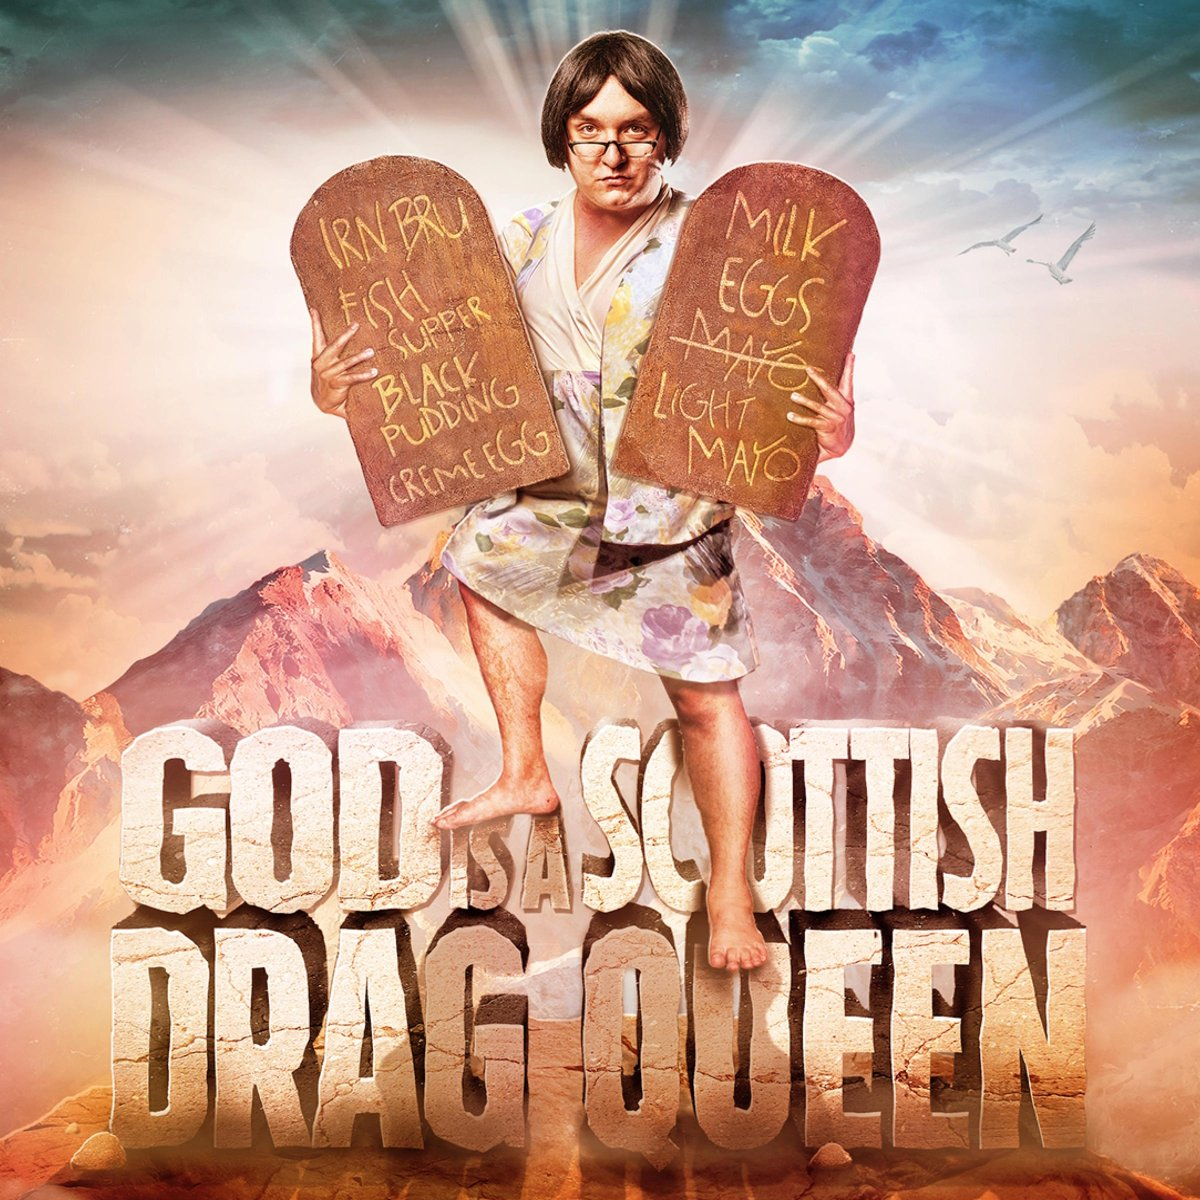 Pastel power suit? Check. Scottish accent? Check. The Lord is in the building. GOD IS A SCOTTISH DRAG QUEEN starring @mikedelamont coming to the Okanagan. Sat Mar 14 @ 6:30 at Venables Theatre in Oliver. Tix @ info http://ow.ly/utzh50yrRqC #oliverbc #okanaganpic.twitter.com/MuXRXoNGbS